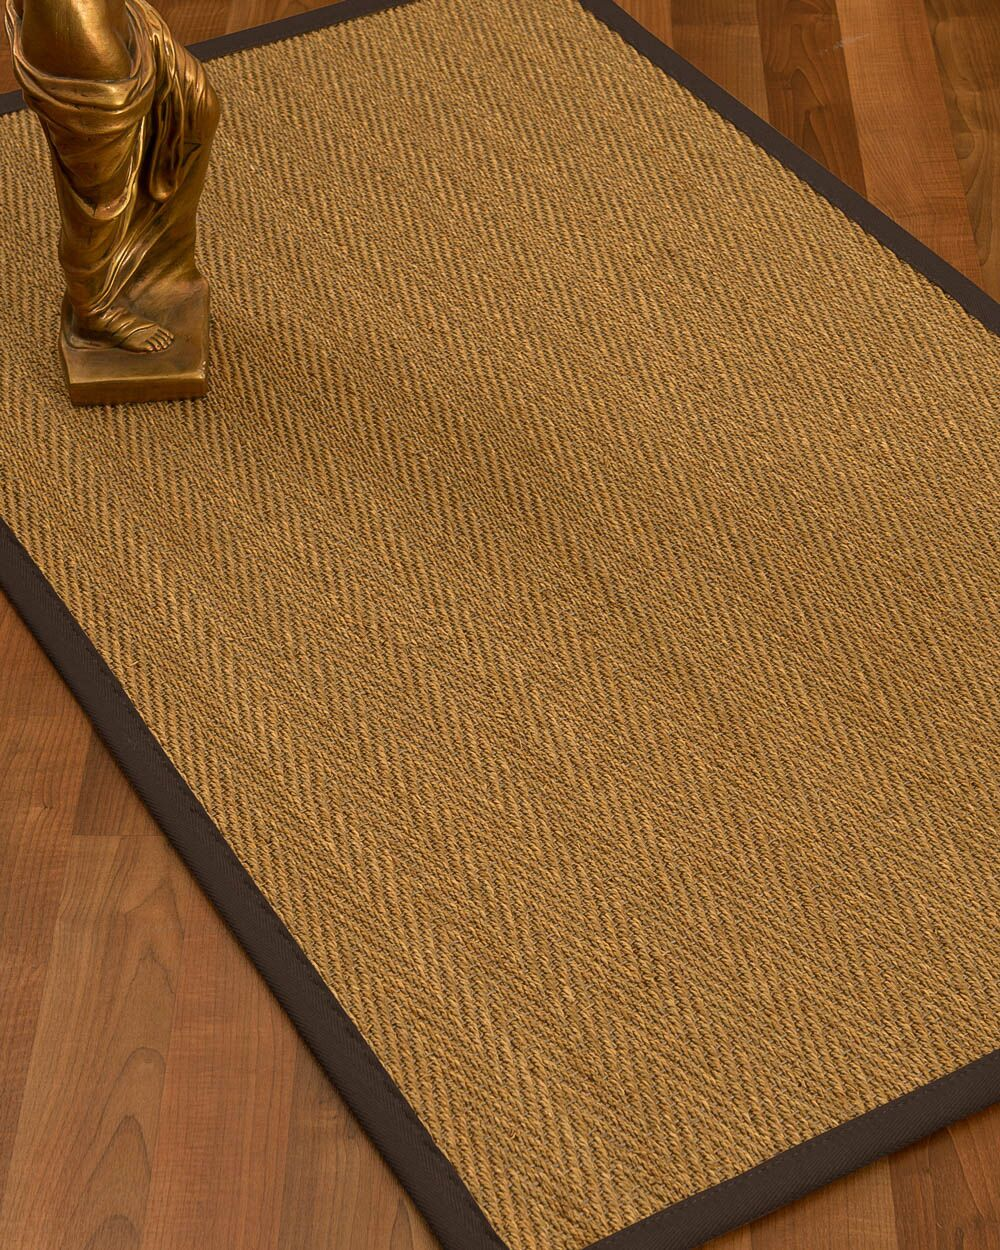 Mahaney Border Hand-Woven Beige/Brown Area Rug Rug Size: Rectangle 8' x 10', Rug Pad Included: Yes